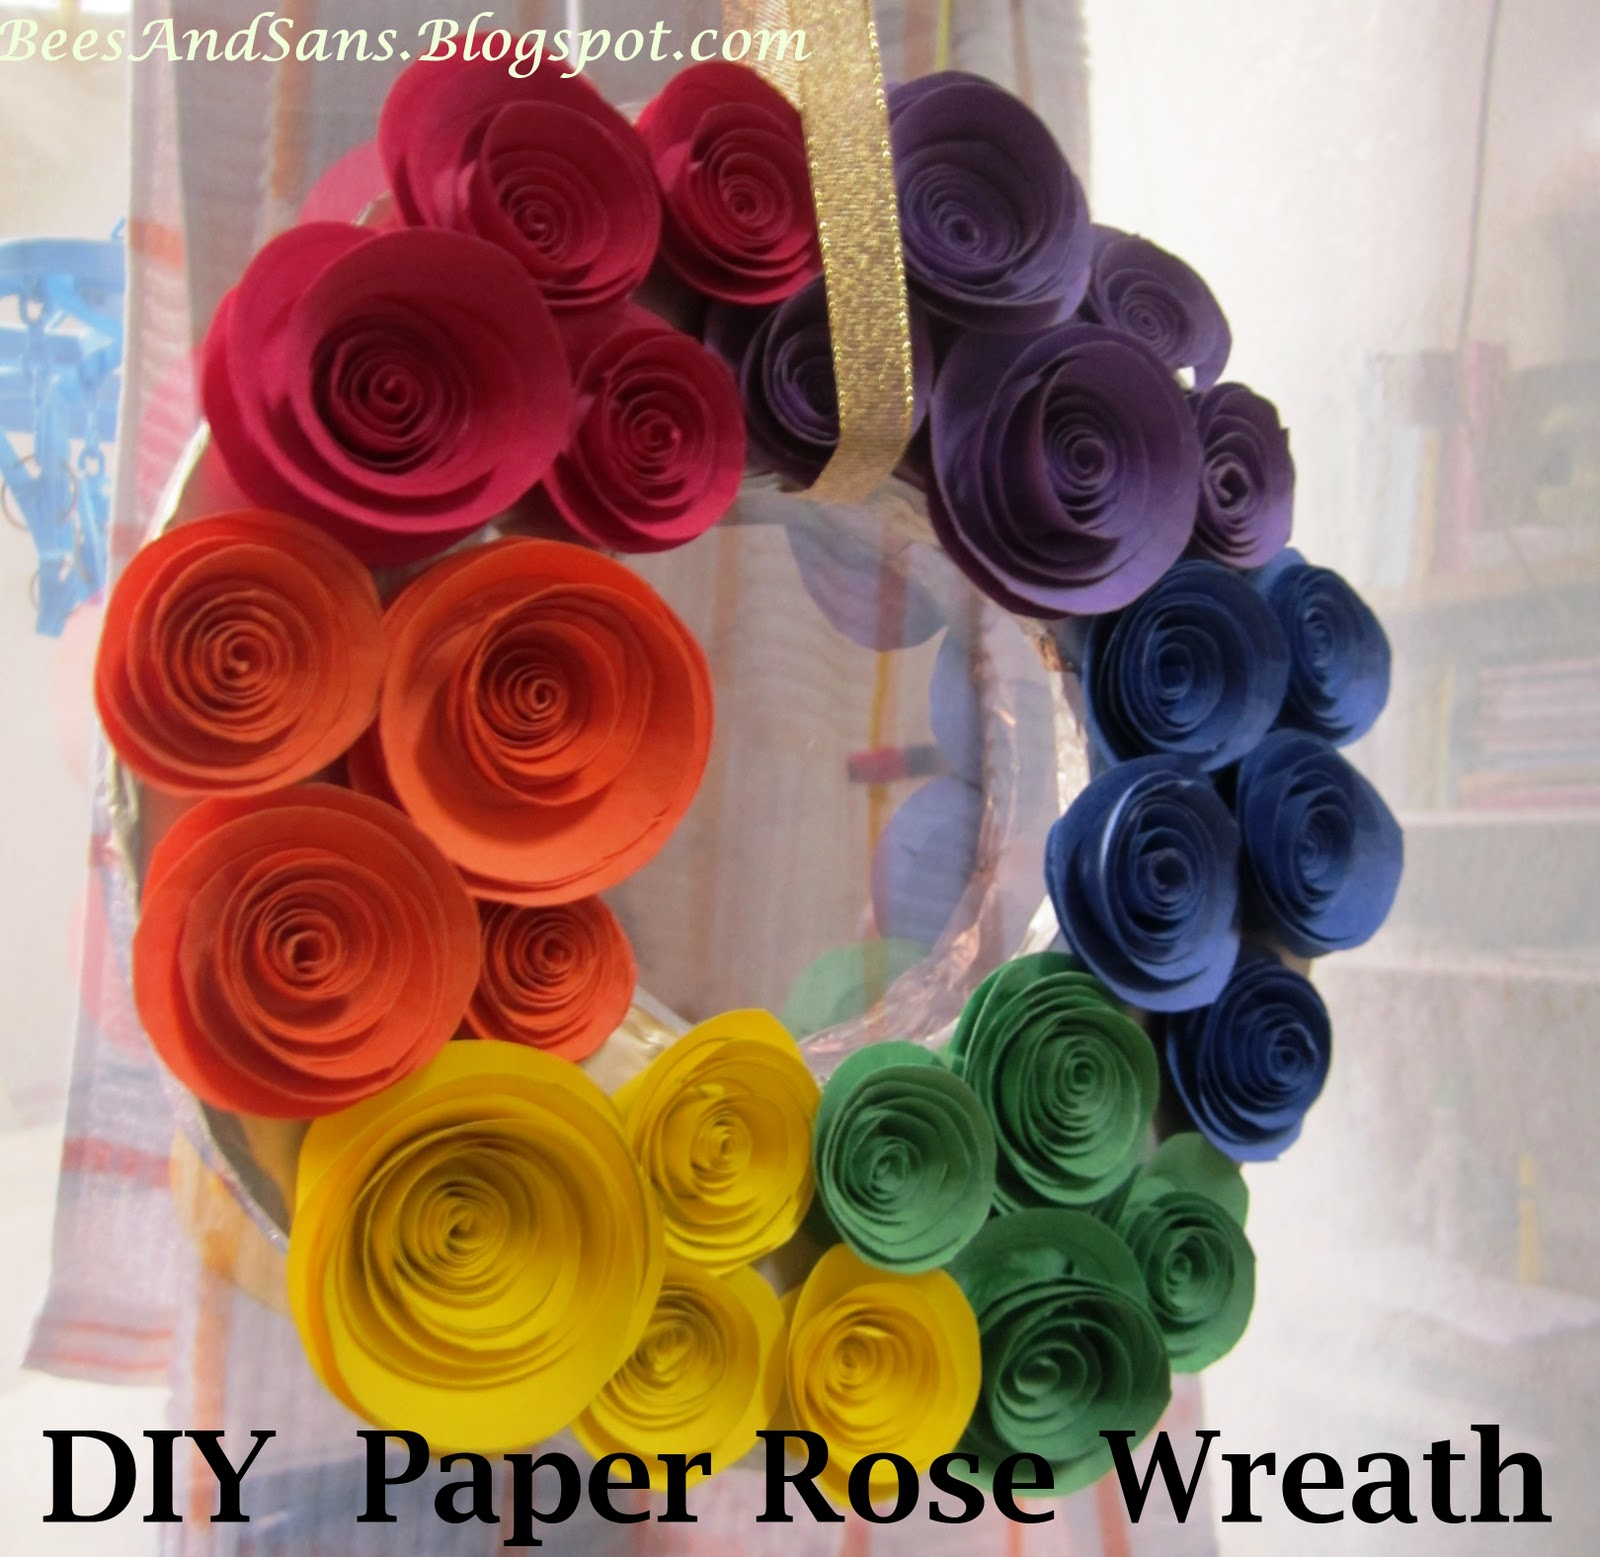 Bees and sans diy rainbow coloured paper rose wreath diy rainbow coloured paper rose wreath mightylinksfo